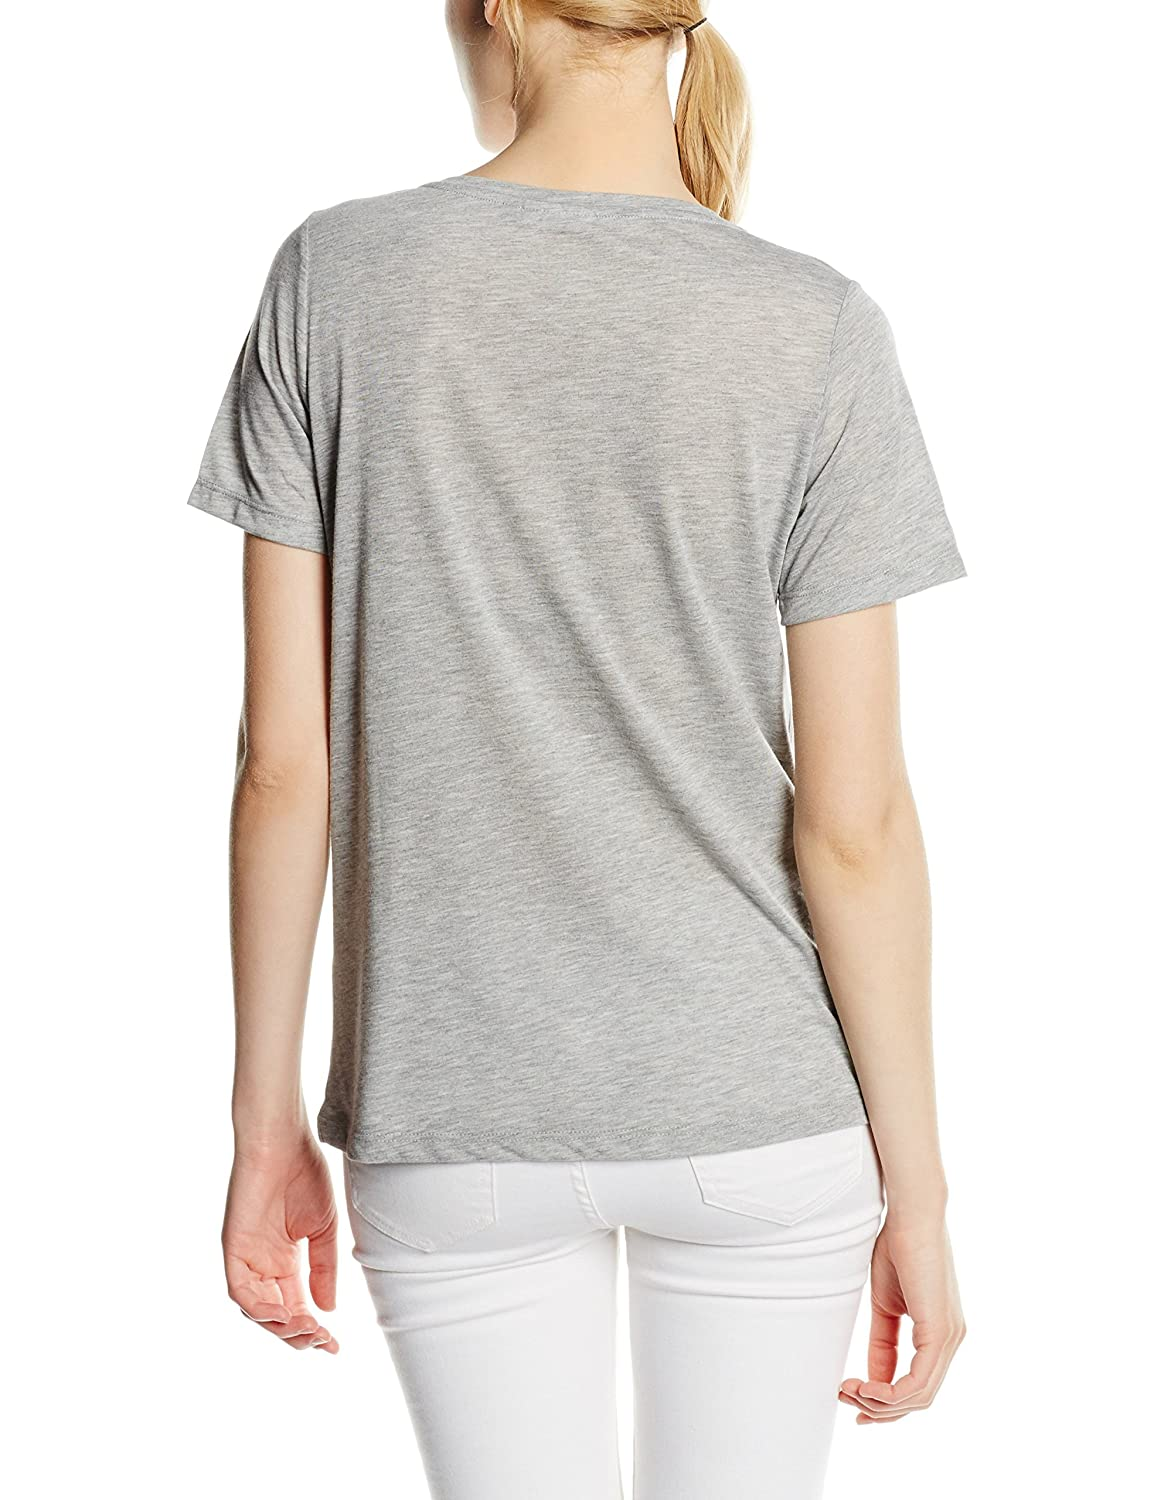 Only Women's Onlwildness S/S Top Box Jrs T-Shirt, Grey-Grau (Light Grey  Melange Print:Wildness), 34 (Herstellergröße: XS): Amazon.co.uk: Clothing